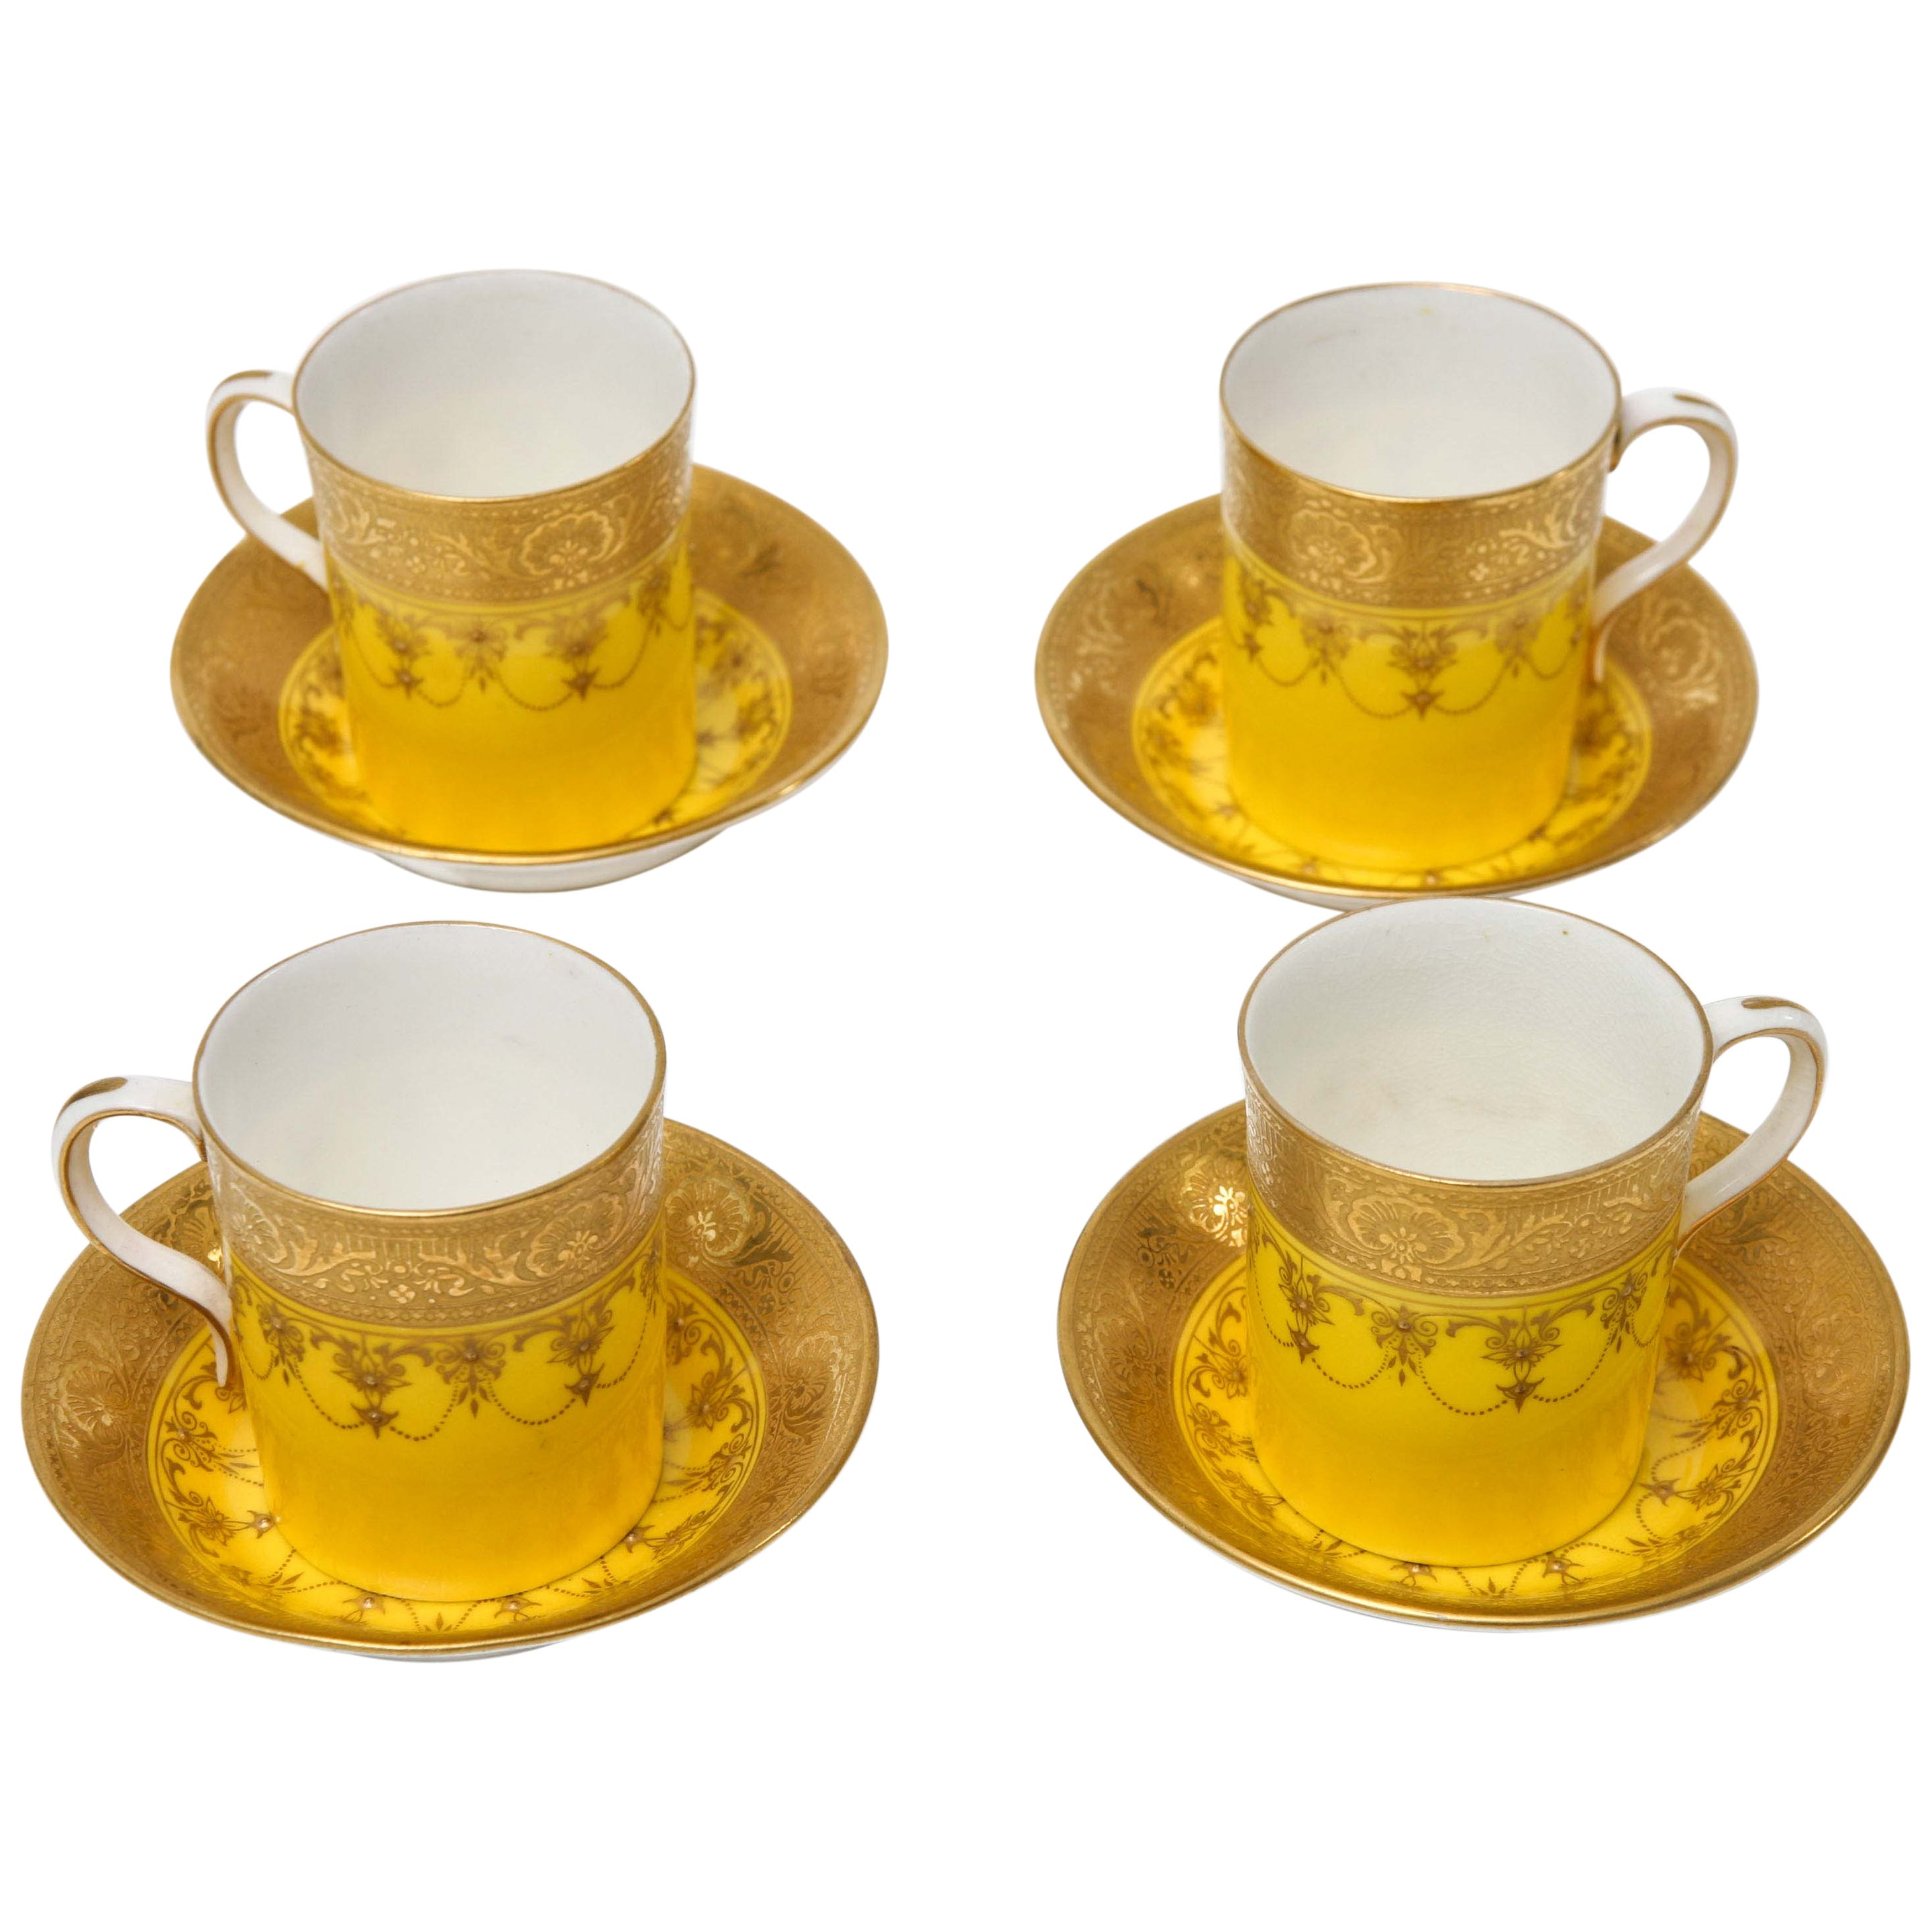 Set of 4 Antique Royal Worcester England Custom Demi Tasse Sets, 8 Pieces Total